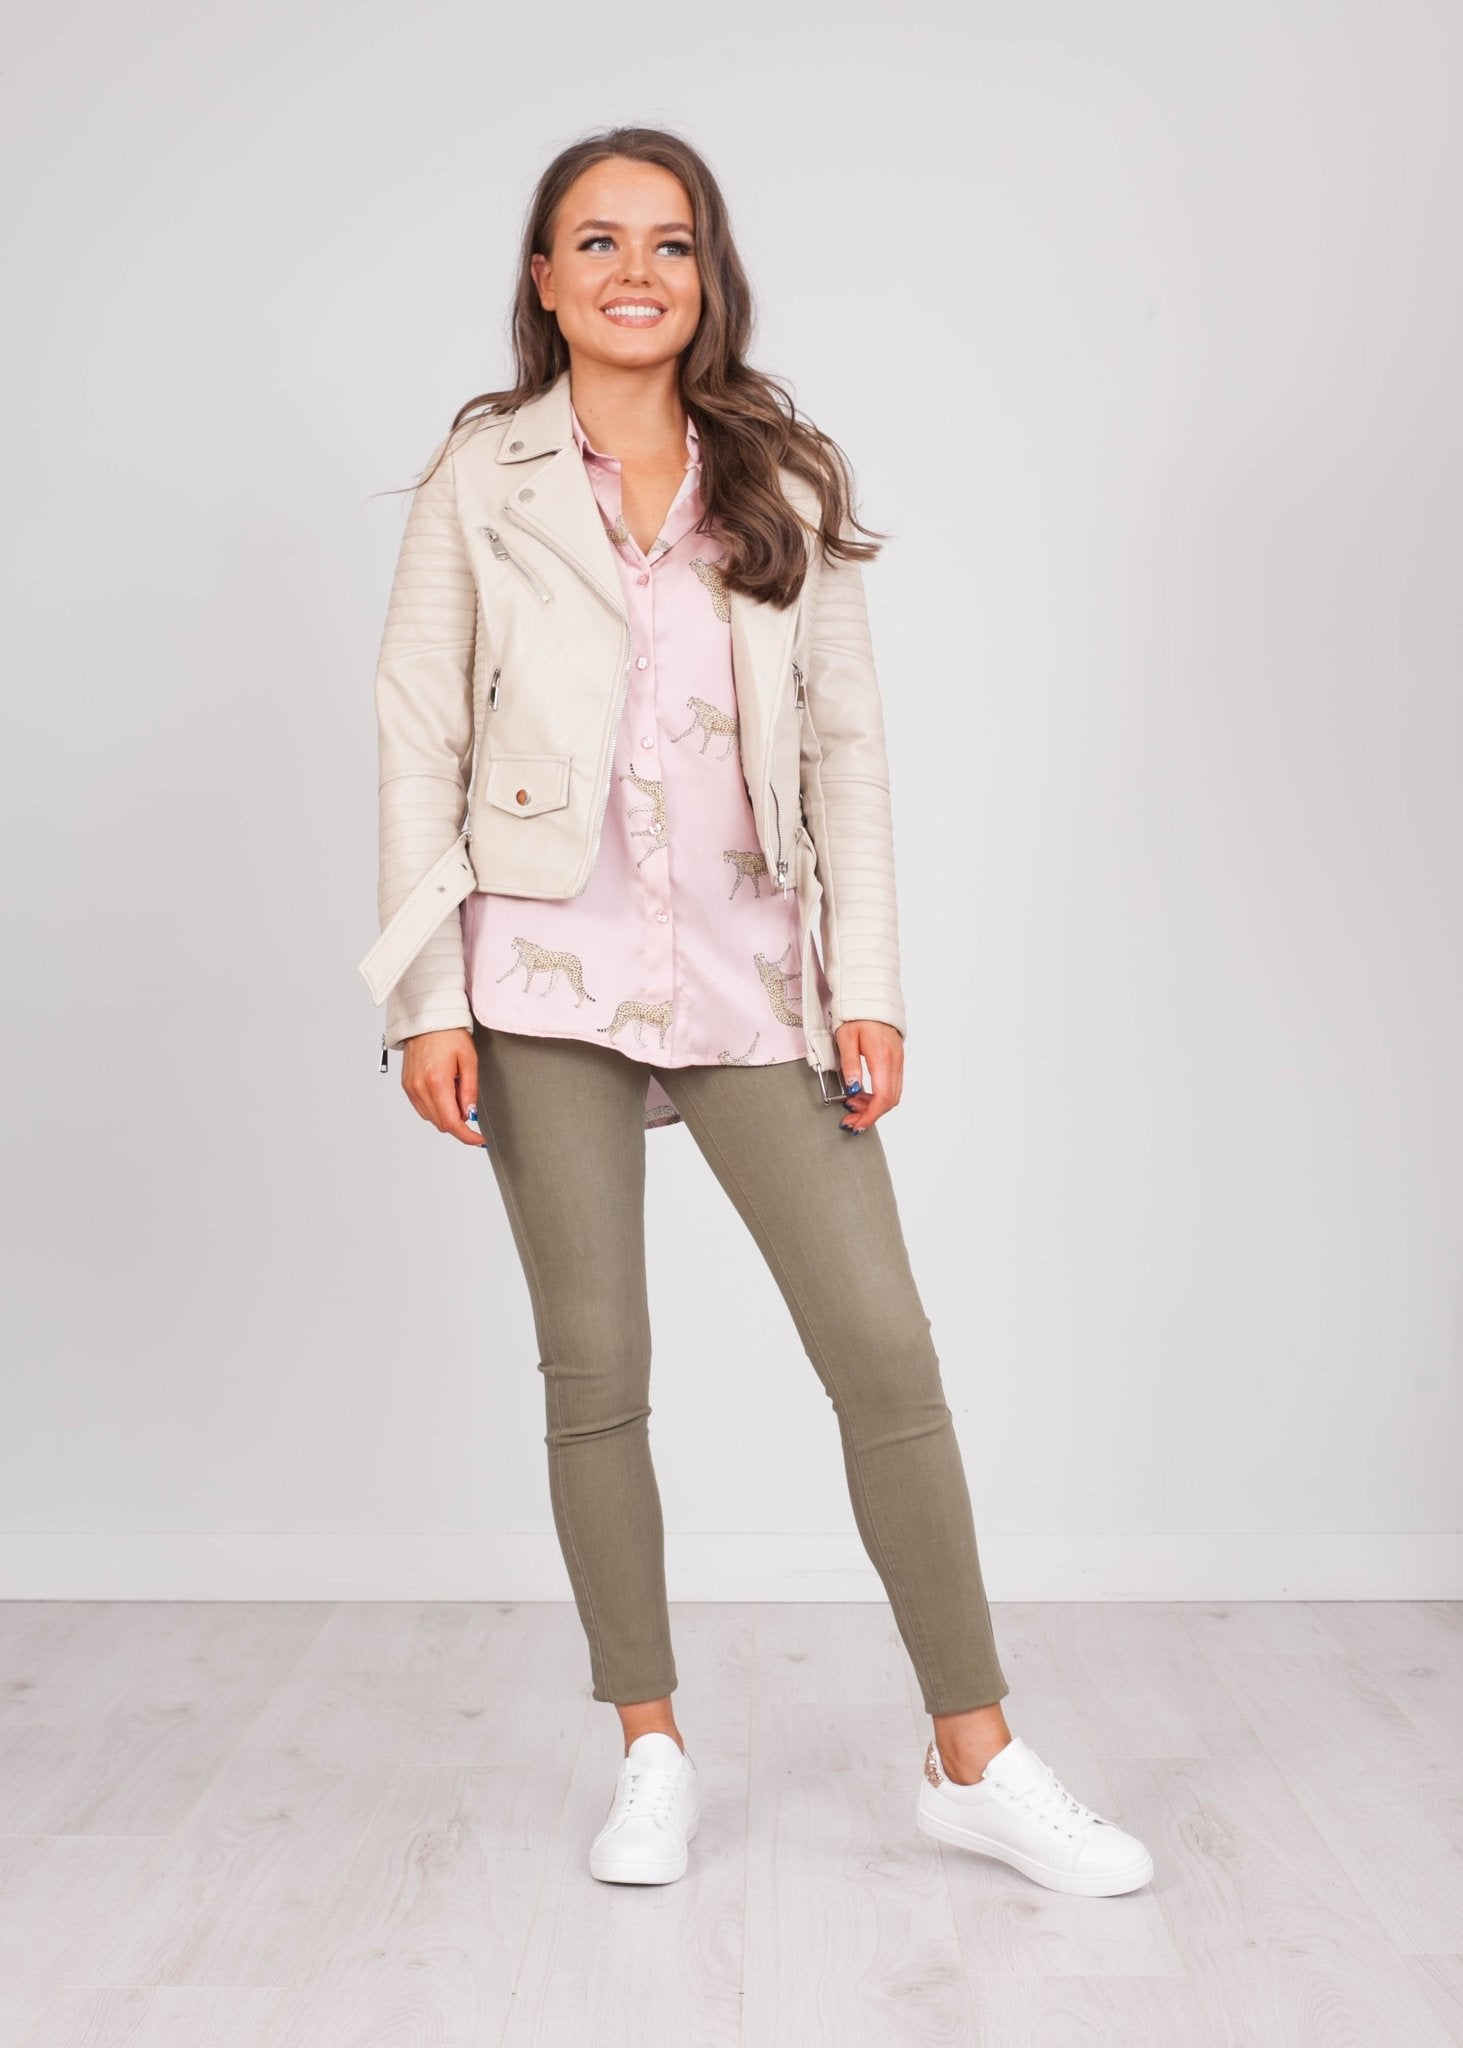 Emilia Cream Quilted Biker Jacket - The Walk in Wardrobe